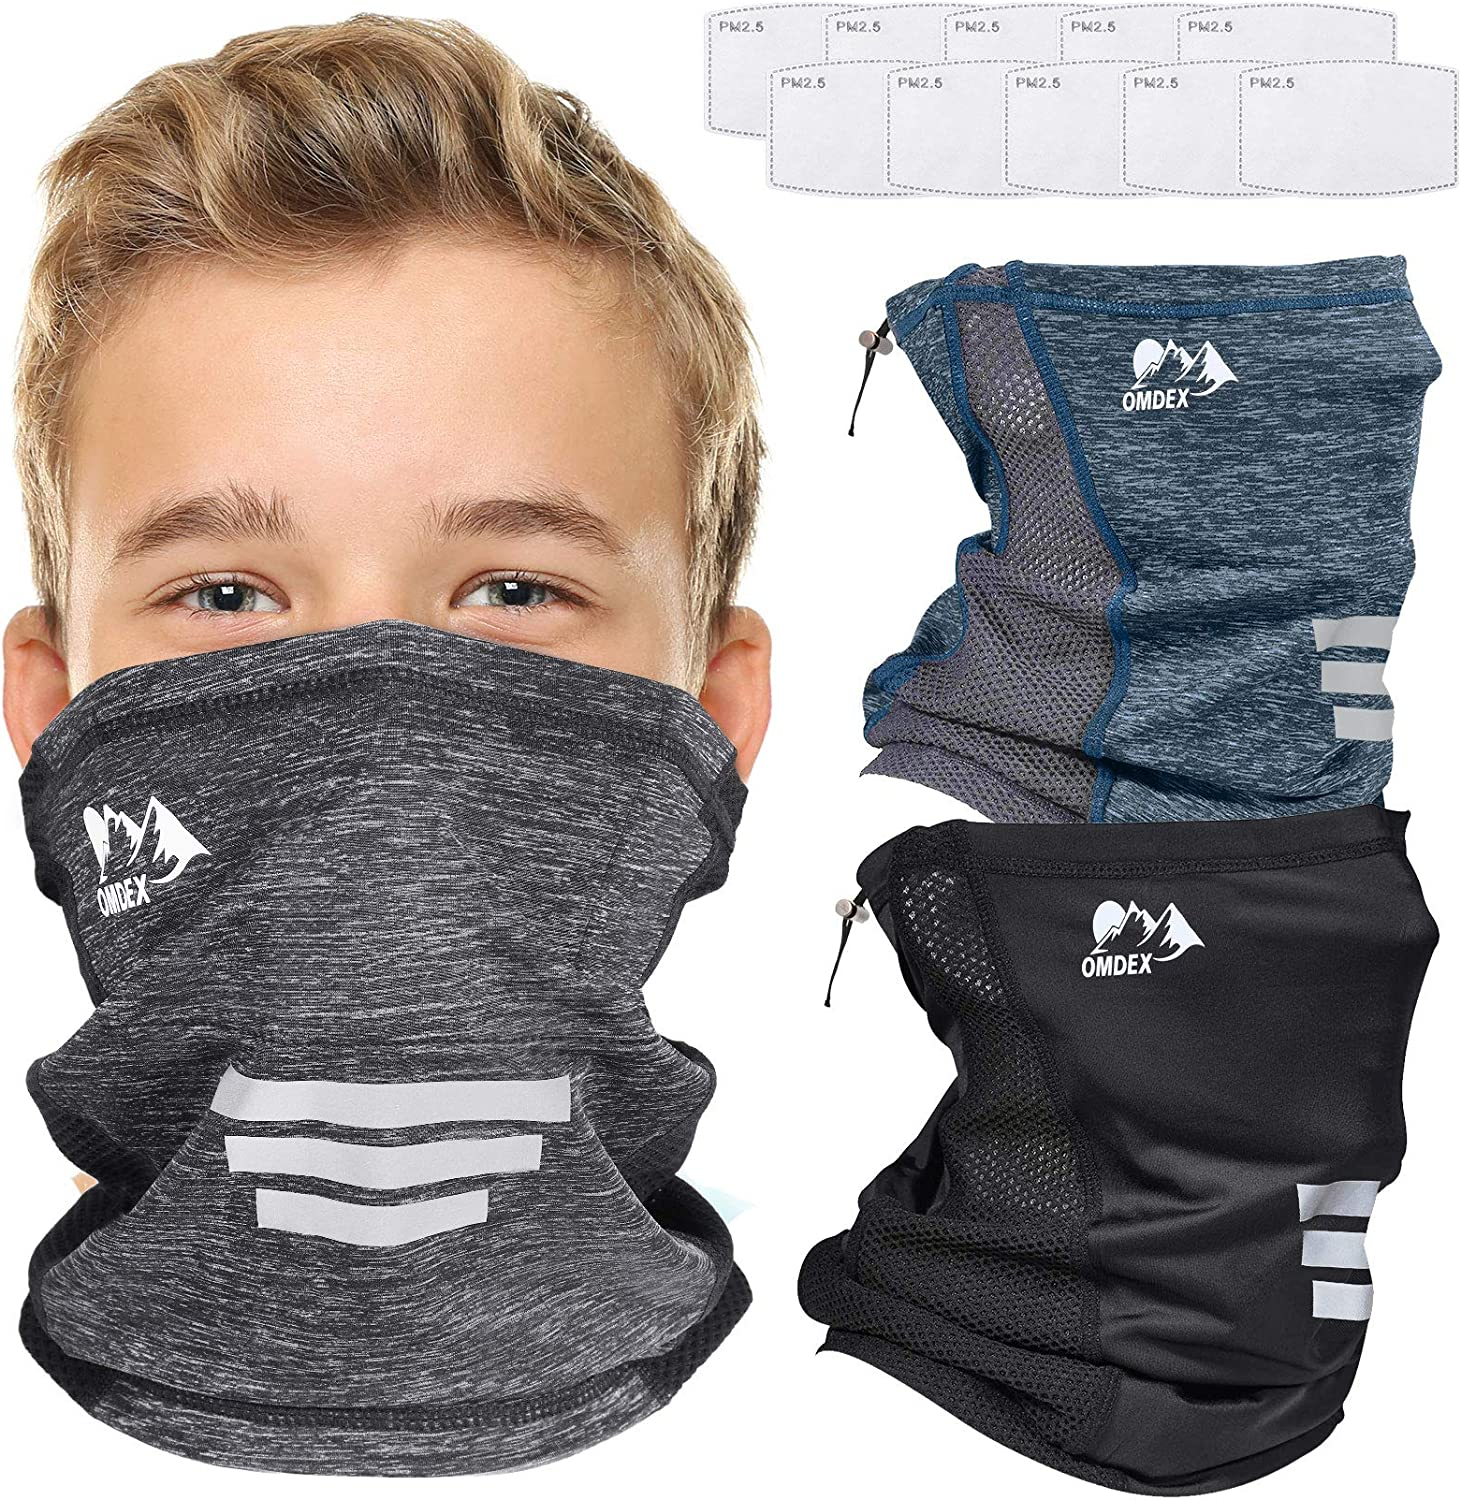 OMDEX 3 Pack Kids Neck Gaiter Mask with Filter and...